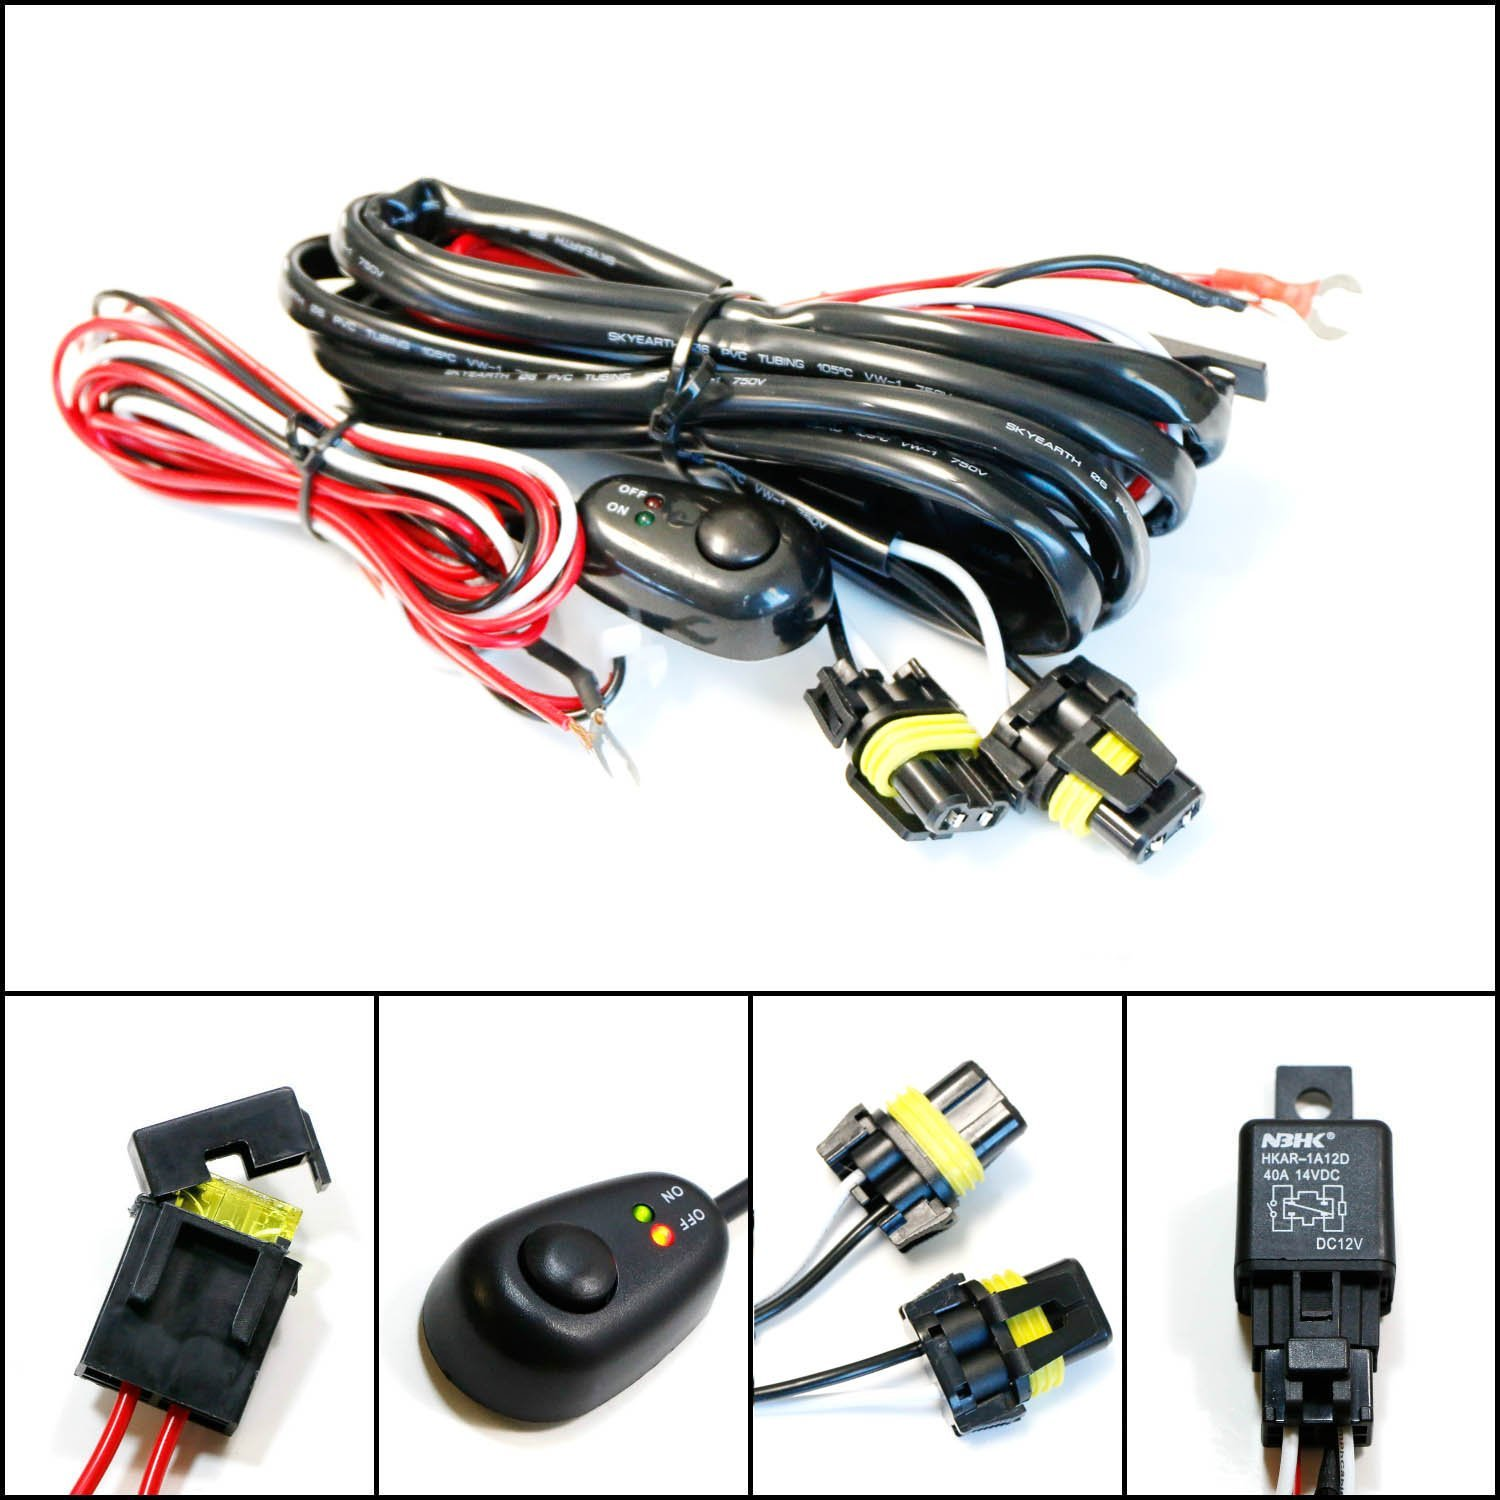 Ijdmtoy 1 9005 9006 H10 Relay Harness Wire Kit With Led Light On Ceiling Fan Wiring Off Switch For Aftermarket Fog Lights Driving Hid Conversion Work Lamp